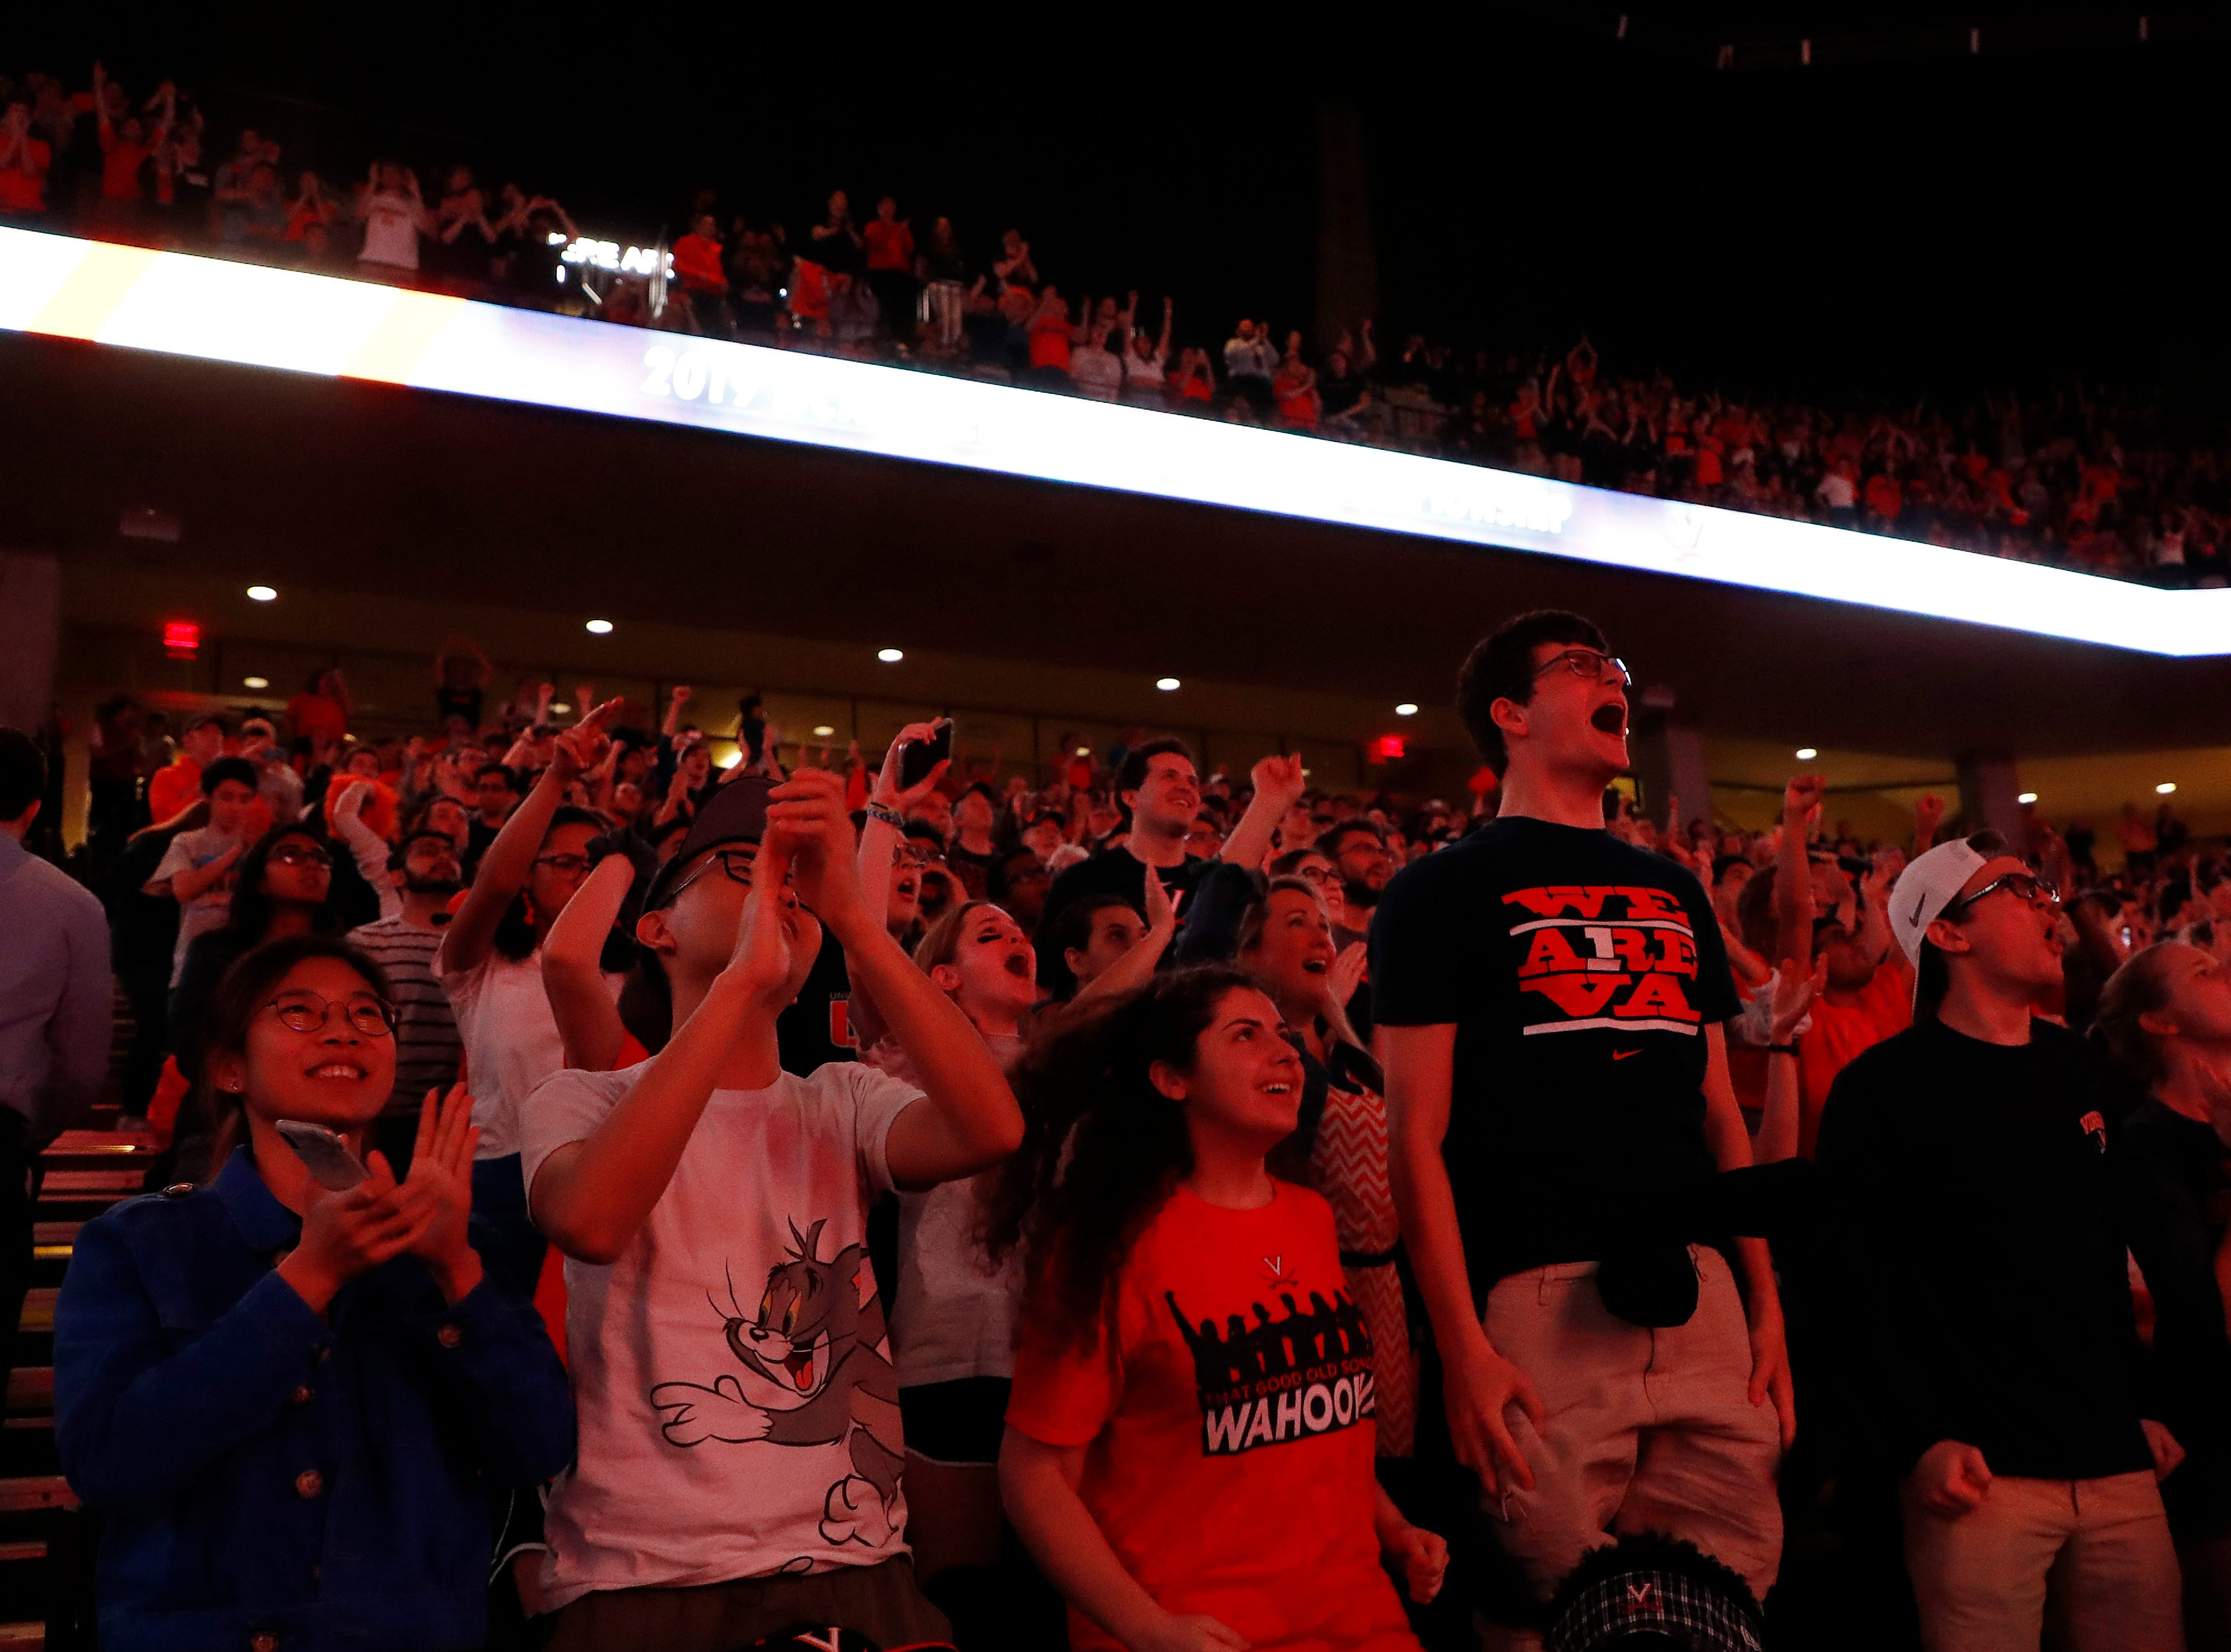 Apr 8, 2019; Charlottesville, VA, USA; Fans cheer during a viewing party at John Paul Jones Arena for the the championship game of the 2019 men's Final Four between the Texas Tech Red Raiders and the Virginia Cavaliers. Mandatory Credit: Geoff Burke-USA TODAY Sports